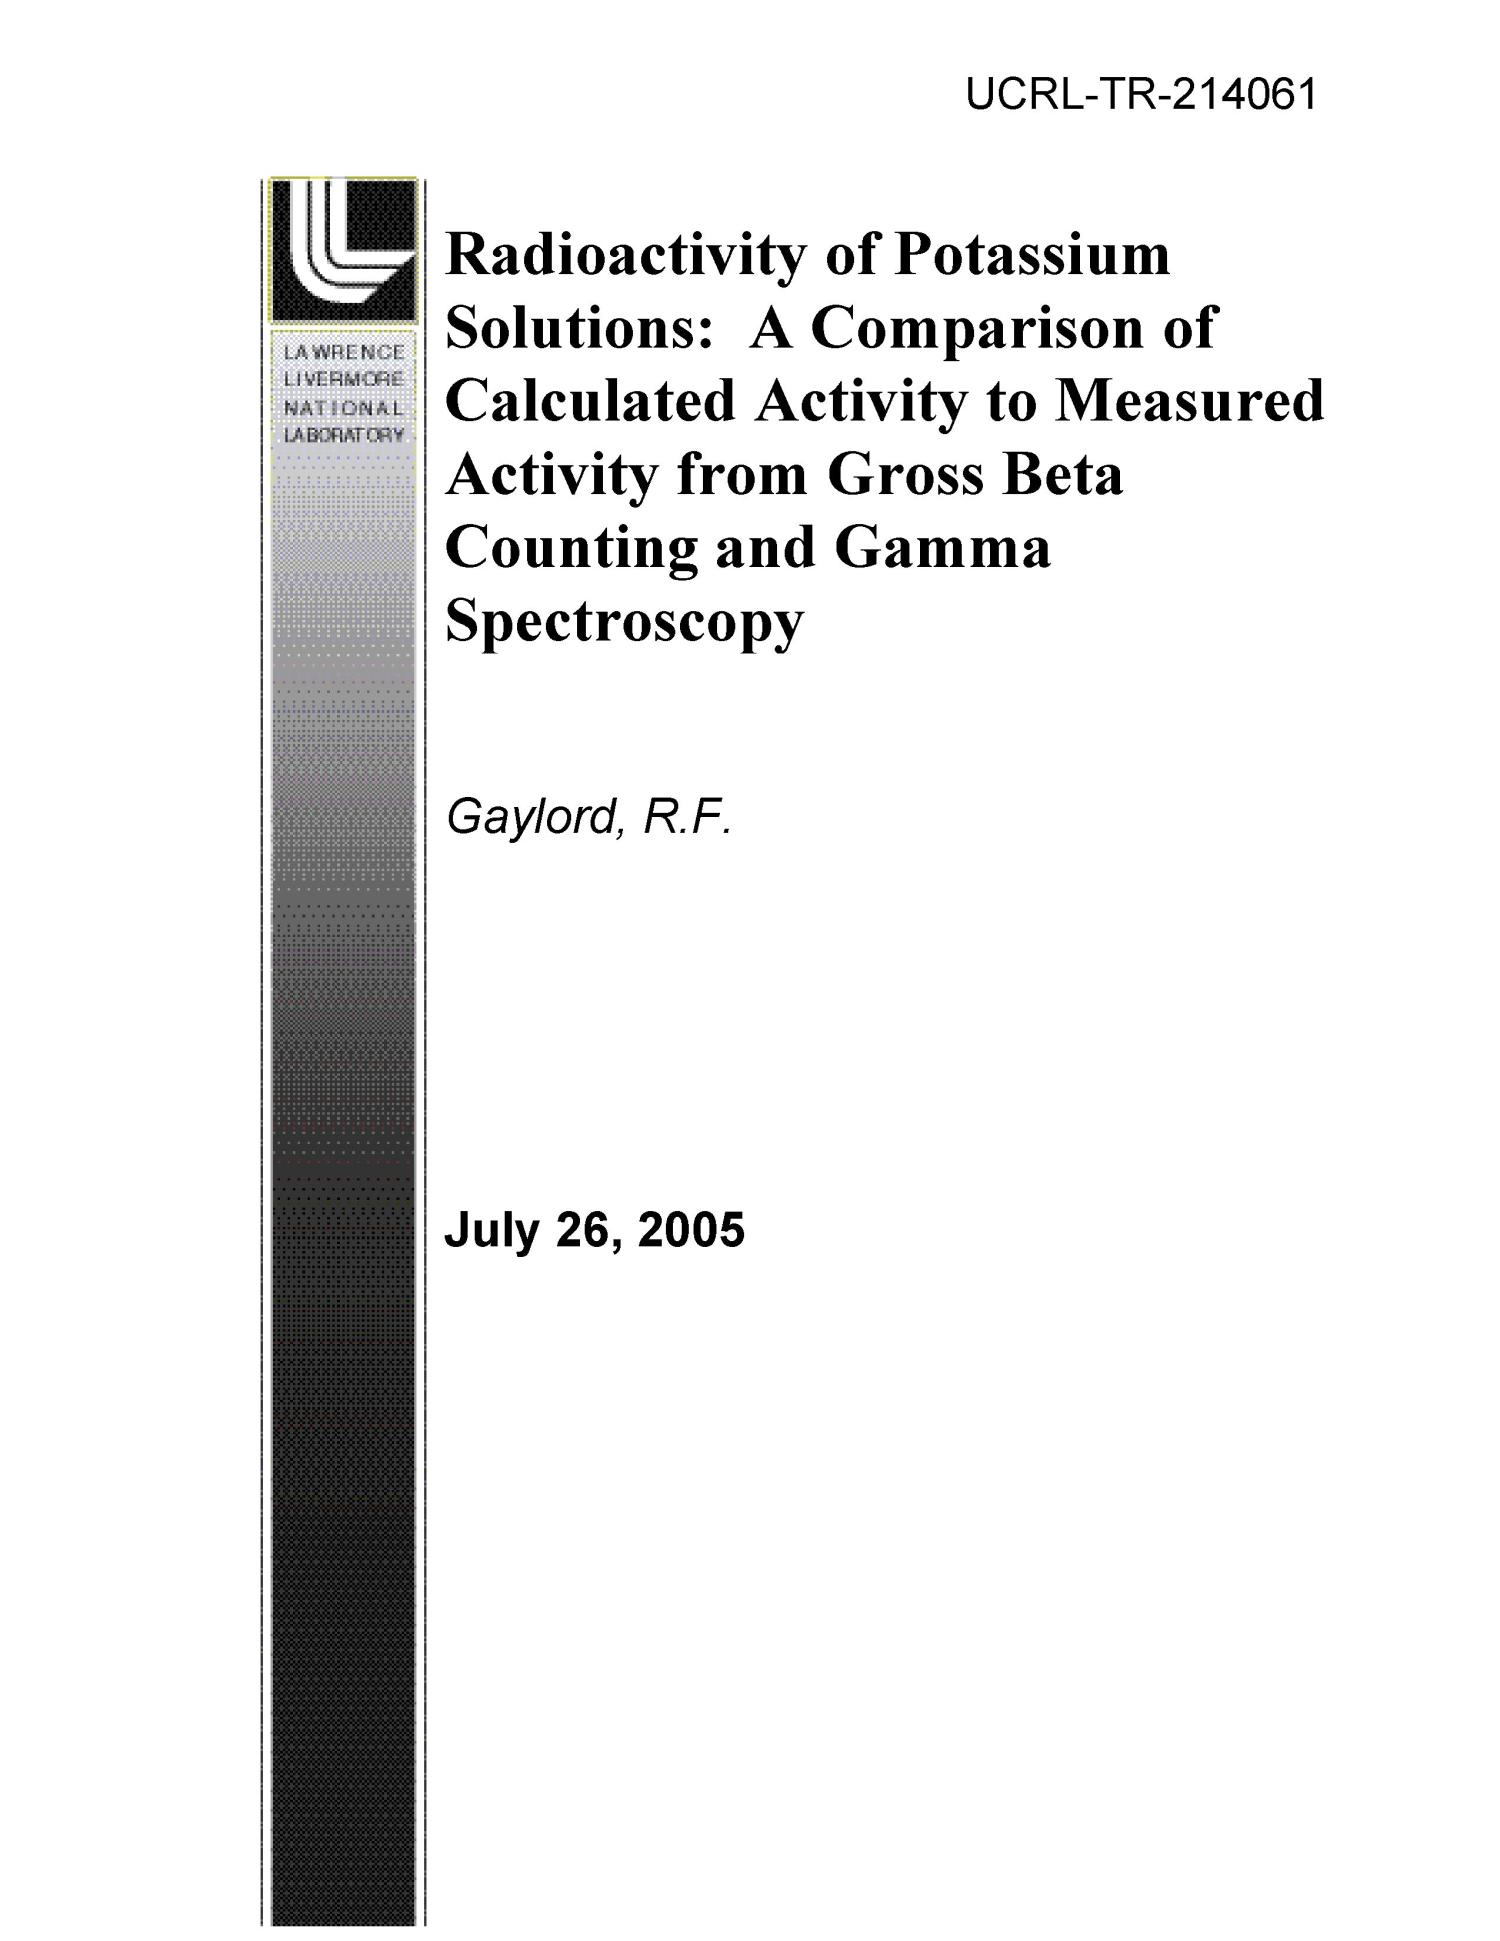 Radioactivity of Potassium Solutions: A Comparison of Calculated Activity to Measured Activity from Gross Beta Counting and Gamma Spectroscopy                                                                                                      [Sequence #]: 1 of 8